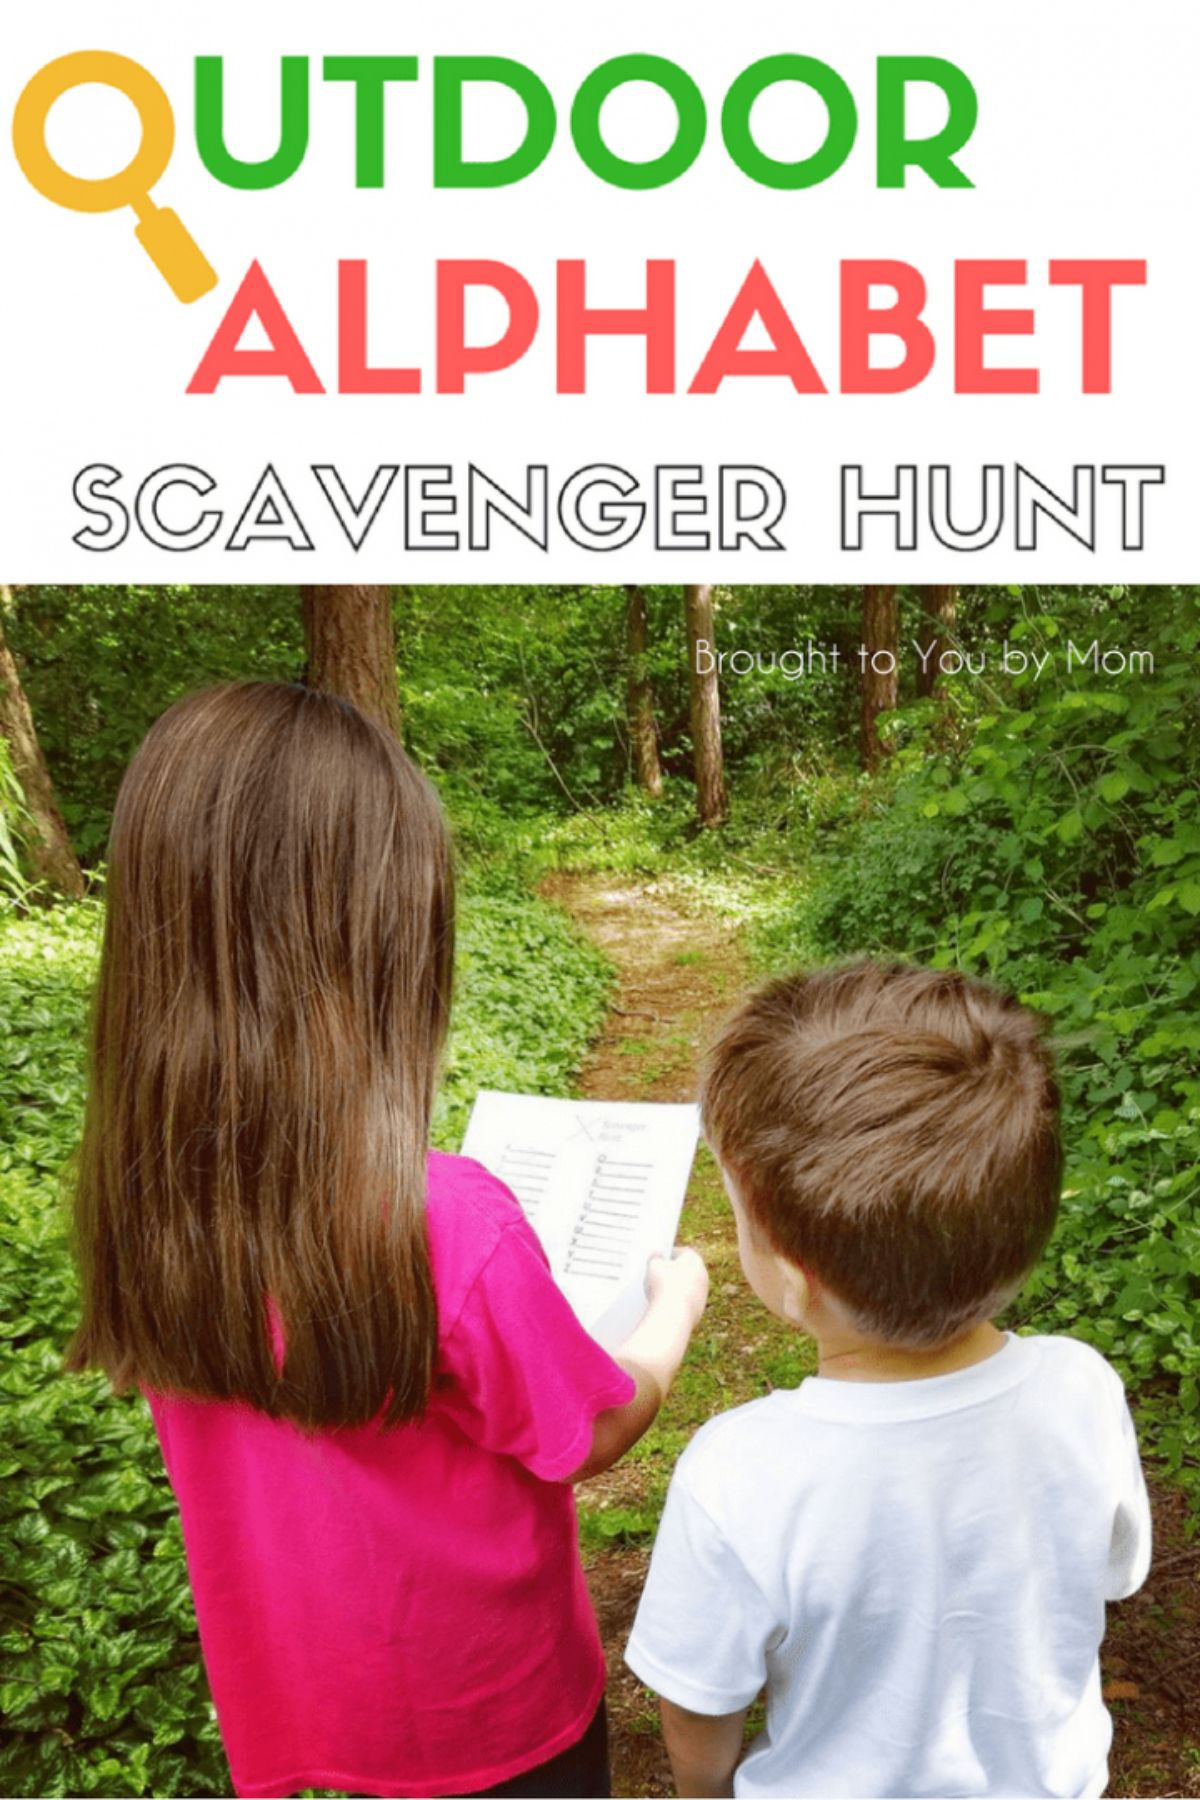 """The text reads """"Outdoor alphabet scavenger hunt"""" the first """"o"""" is a magnifying glass. Below are two children walking through a wooded areas looking at a sheet of paper"""